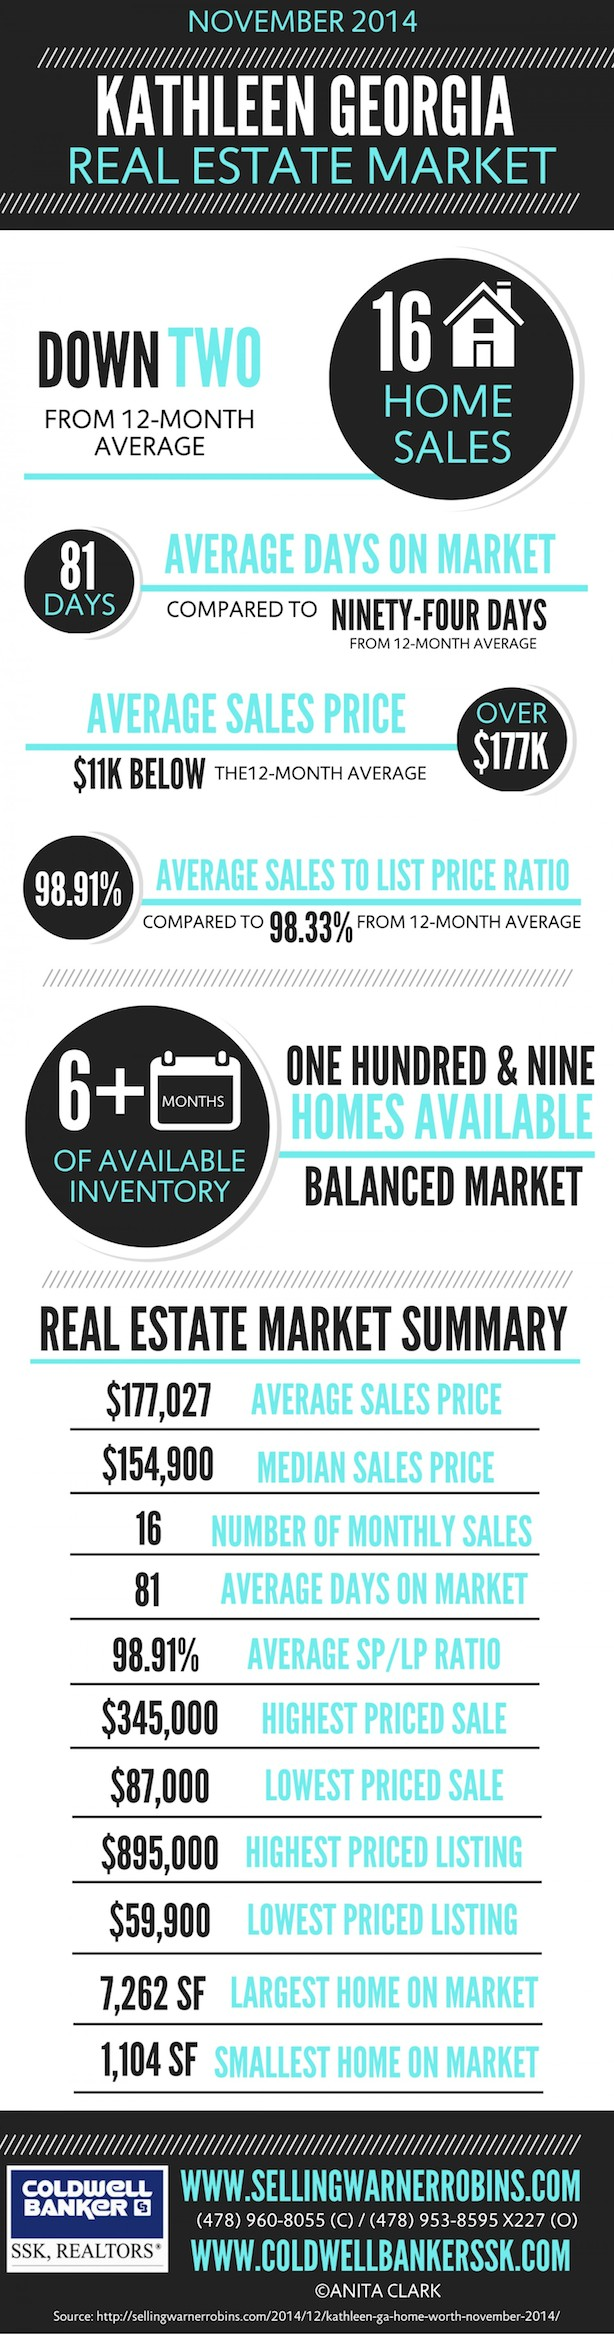 Anita Clark real estate market report